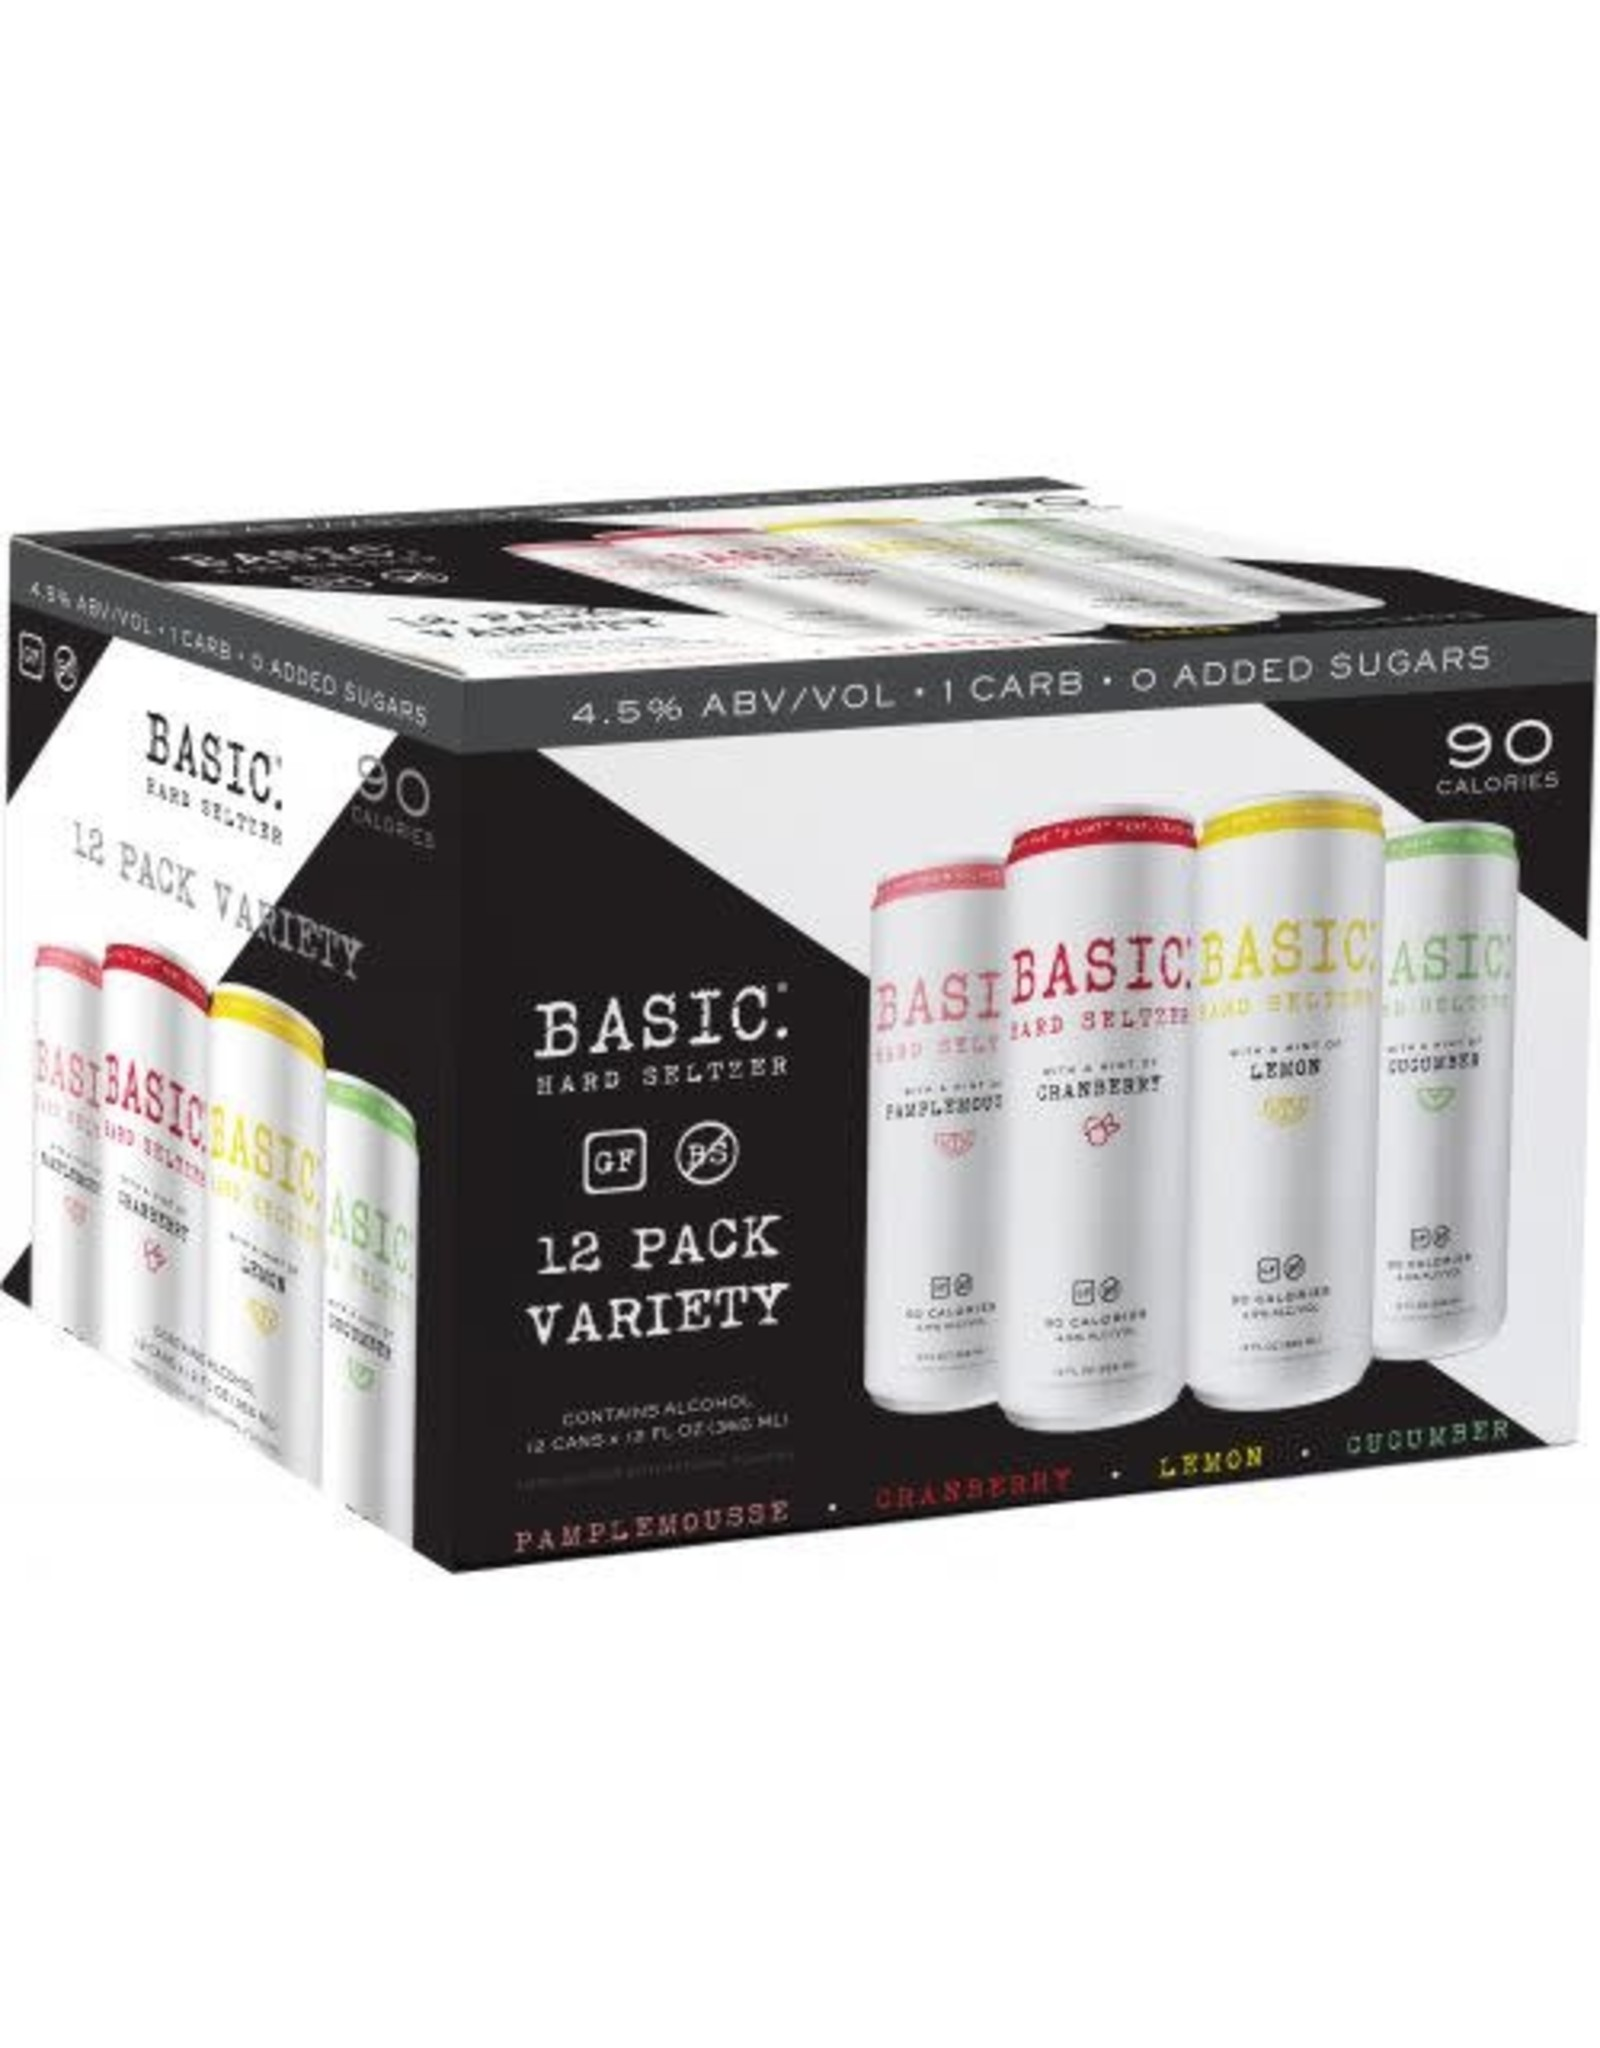 BASIC SELTZER VARIETY PACK 2/12/12 Oz CN